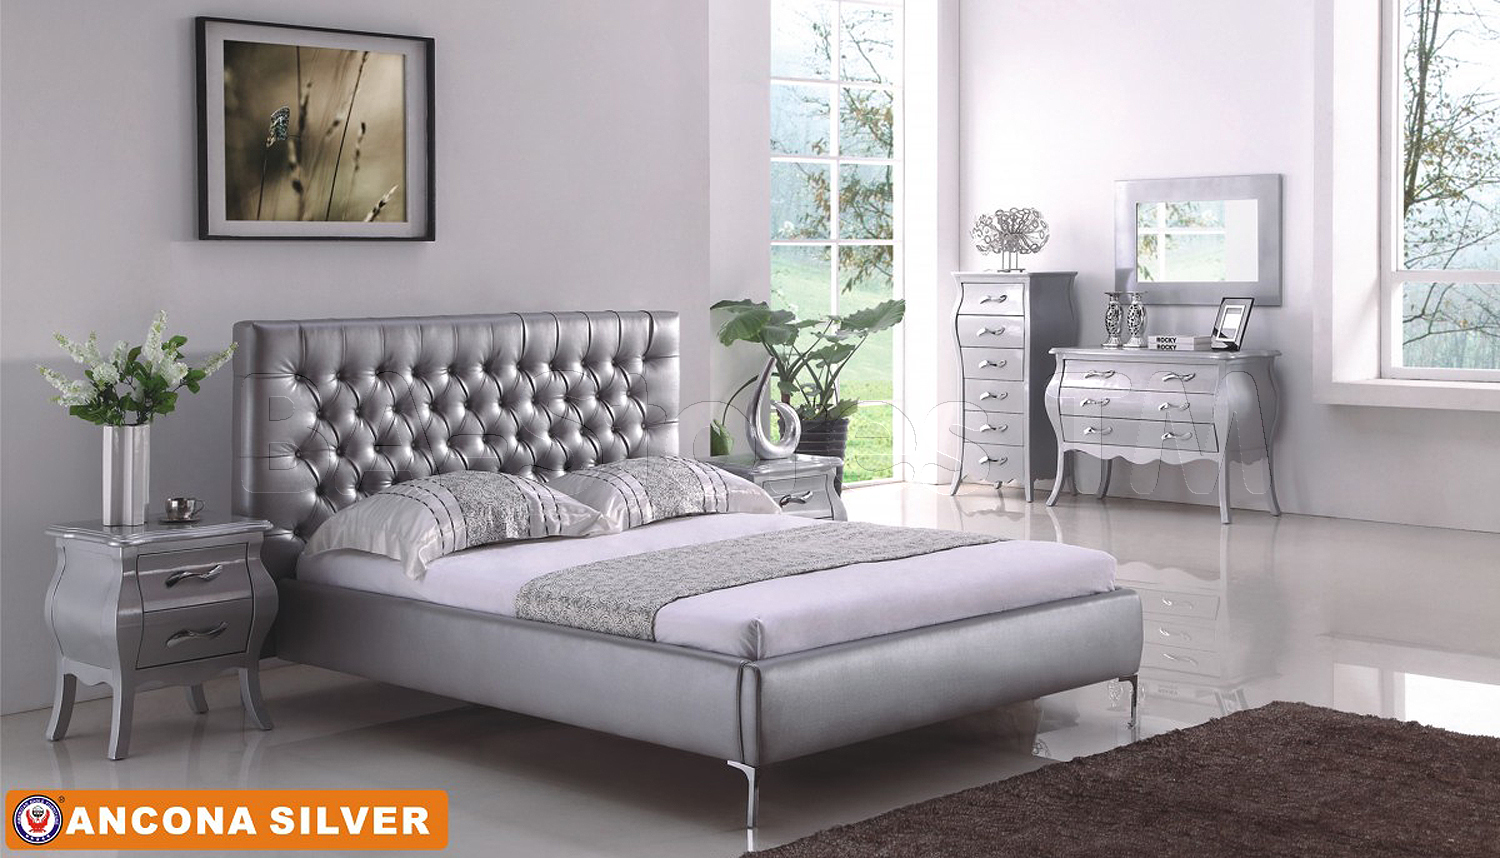 silver bedroom furniture sets. silver bedroom furniture sets photo  4 Silver reflect a clean and clutter free